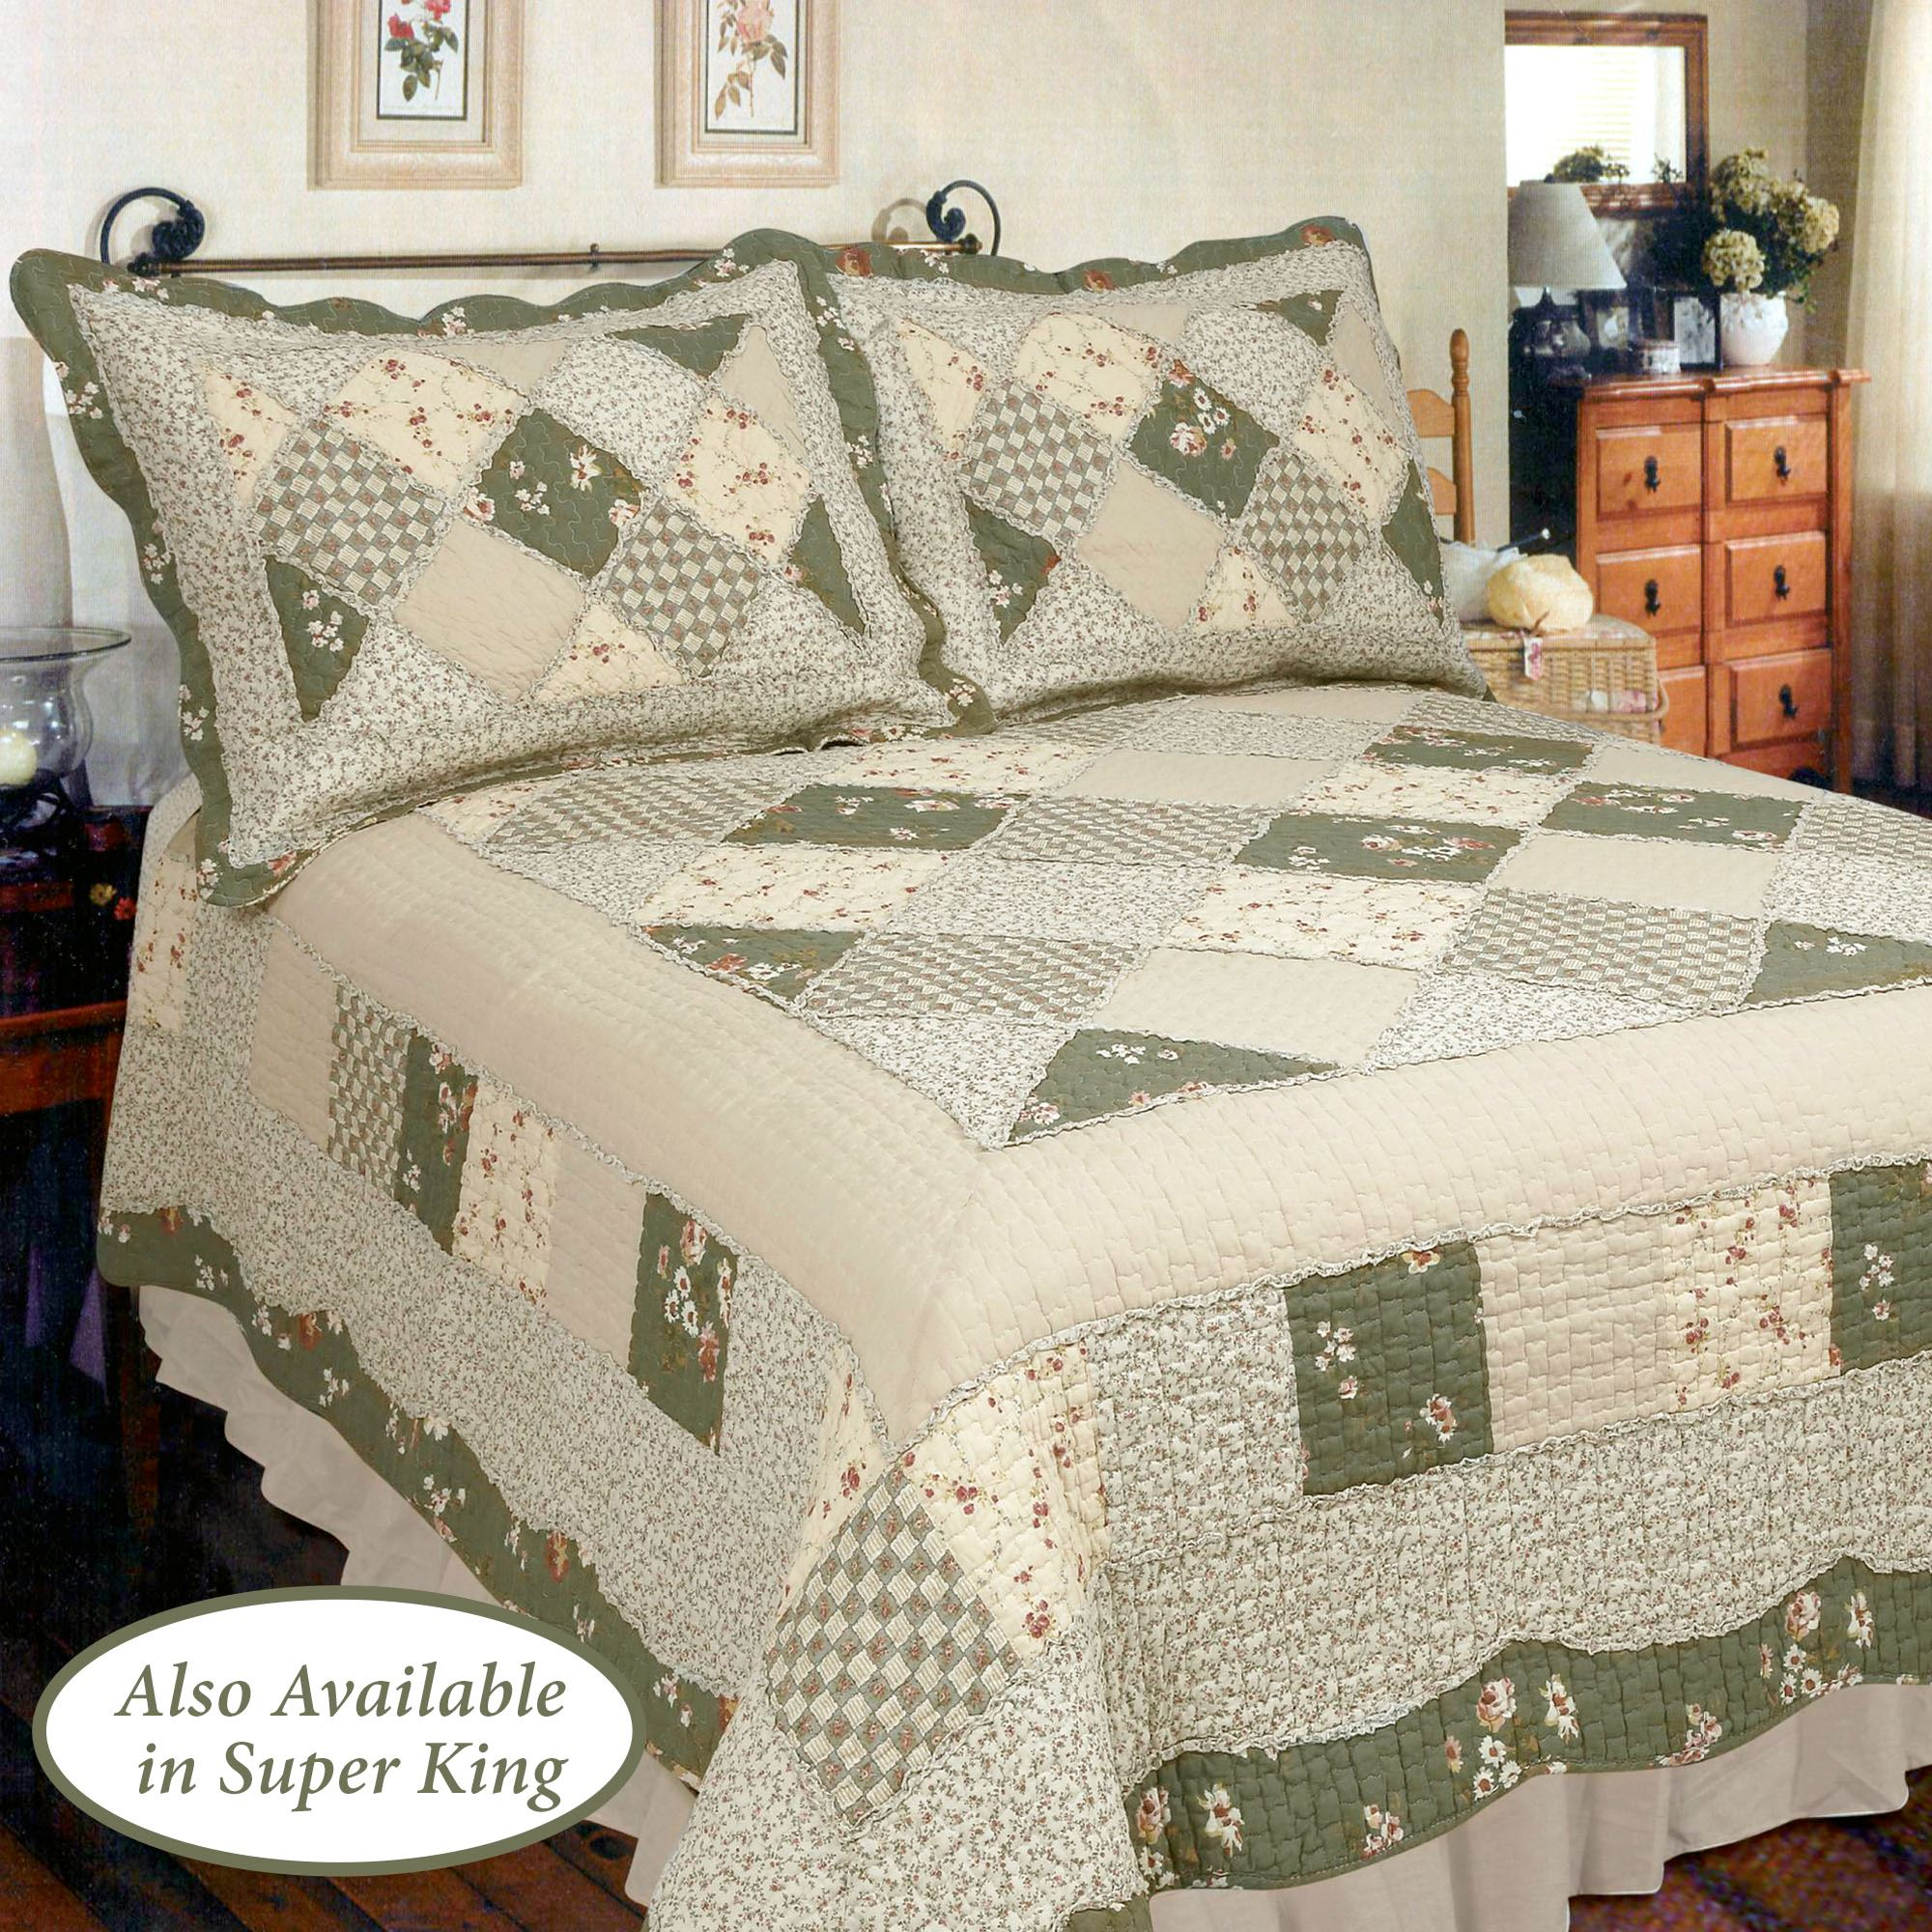 overstock orders luxurious season down bath sage all comforter alternative over free product superior bed shipping on reversible bedding